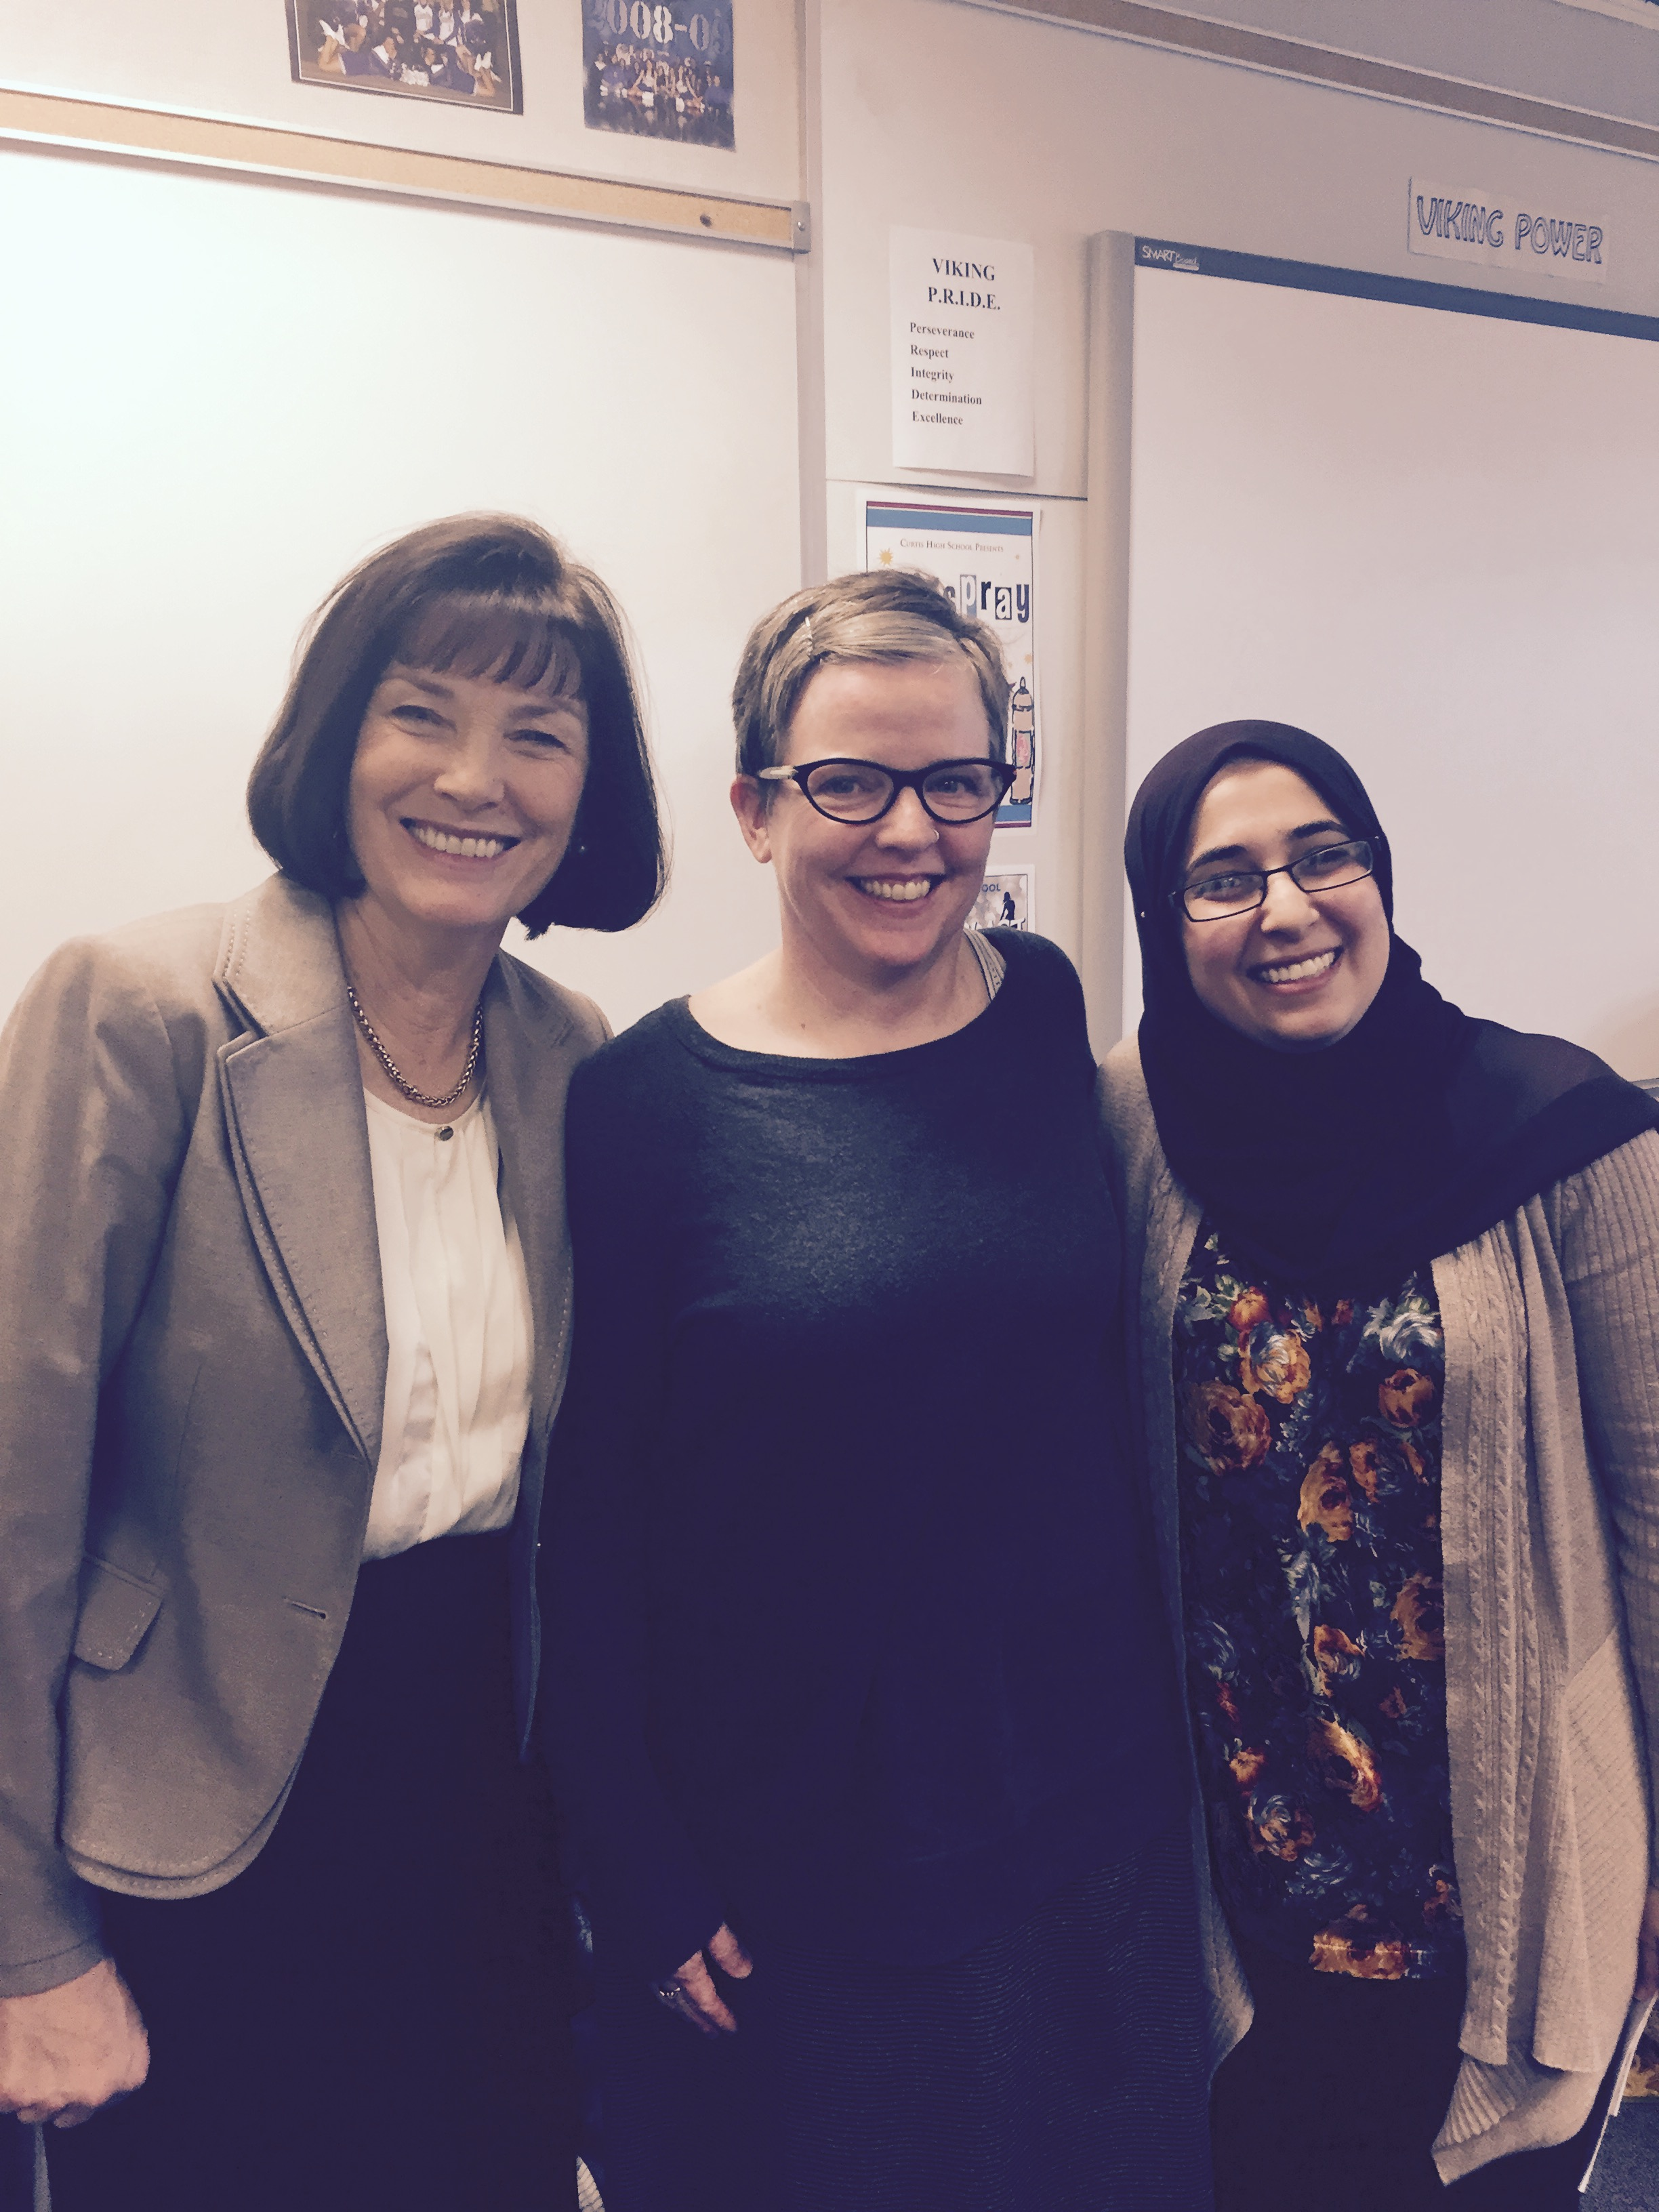 From left to right: Sister Linda Reeves, former first Counselor in the Relief Society general presidency, stands with a Jewish woman and an Islamic woman, after participating in a workshop on prayer during the 2017 Associated Ministries Interfaith Women's Conference.